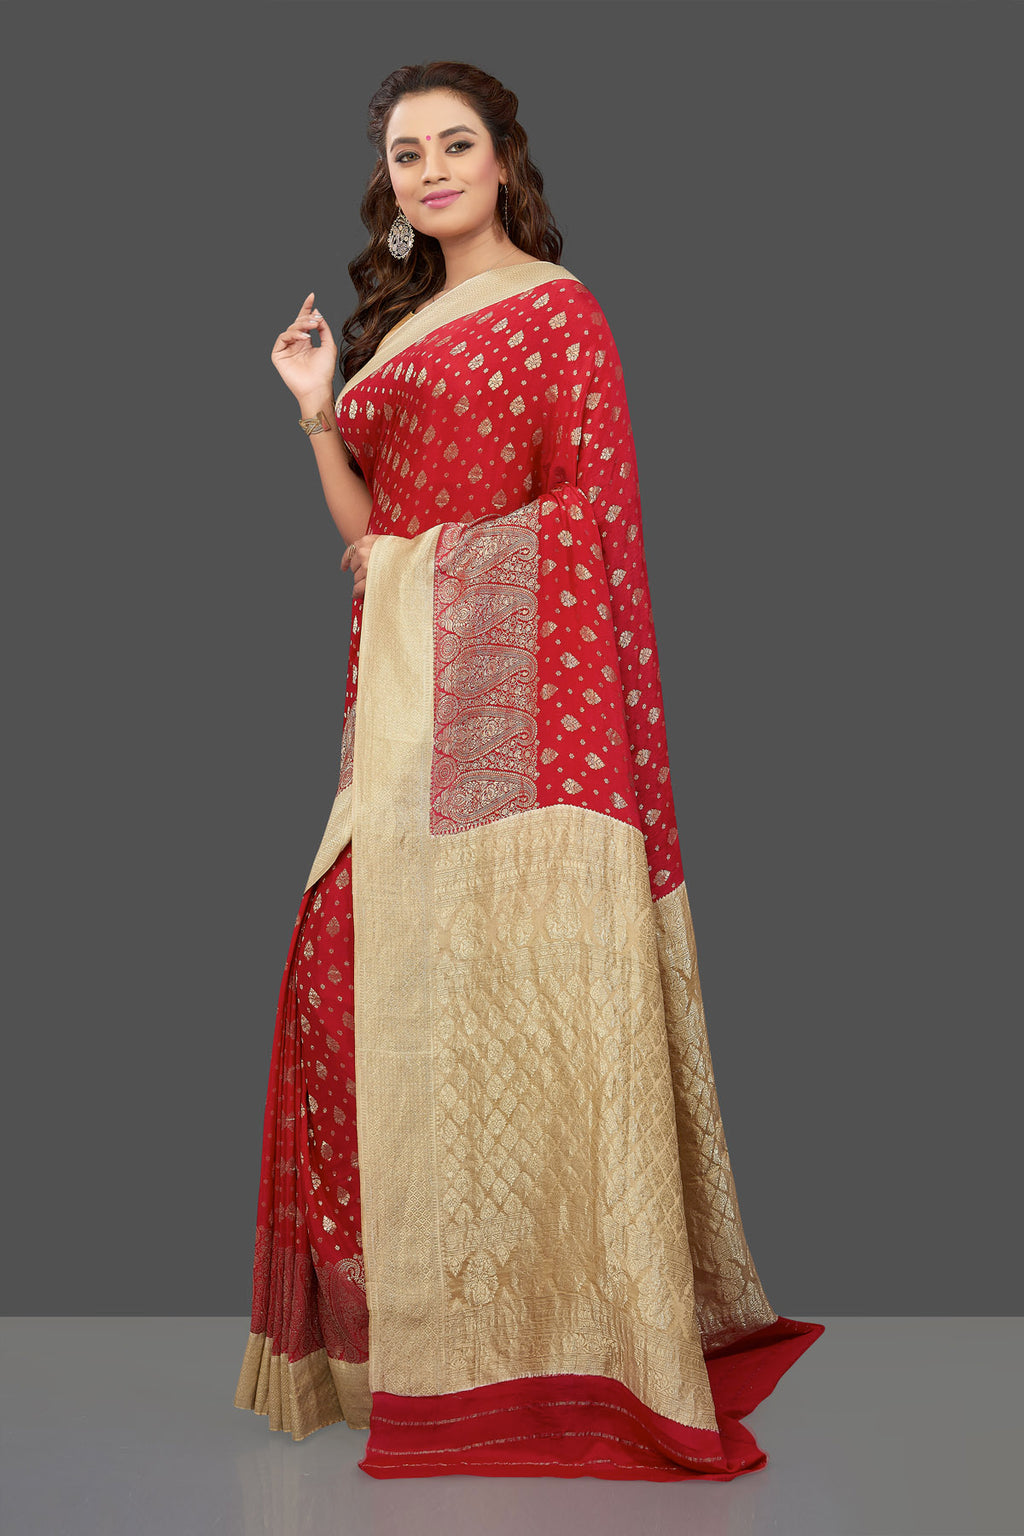 Buy gorgeous red color crepe sari online in USA with zari buta and zari border. Shop for weddings and special occasions stunning tussar sarees, hand embroidered saris, crepe sarees, designer sarees in USA from Pure Elegance Indian clothing store in USA. Shop online now.-full view